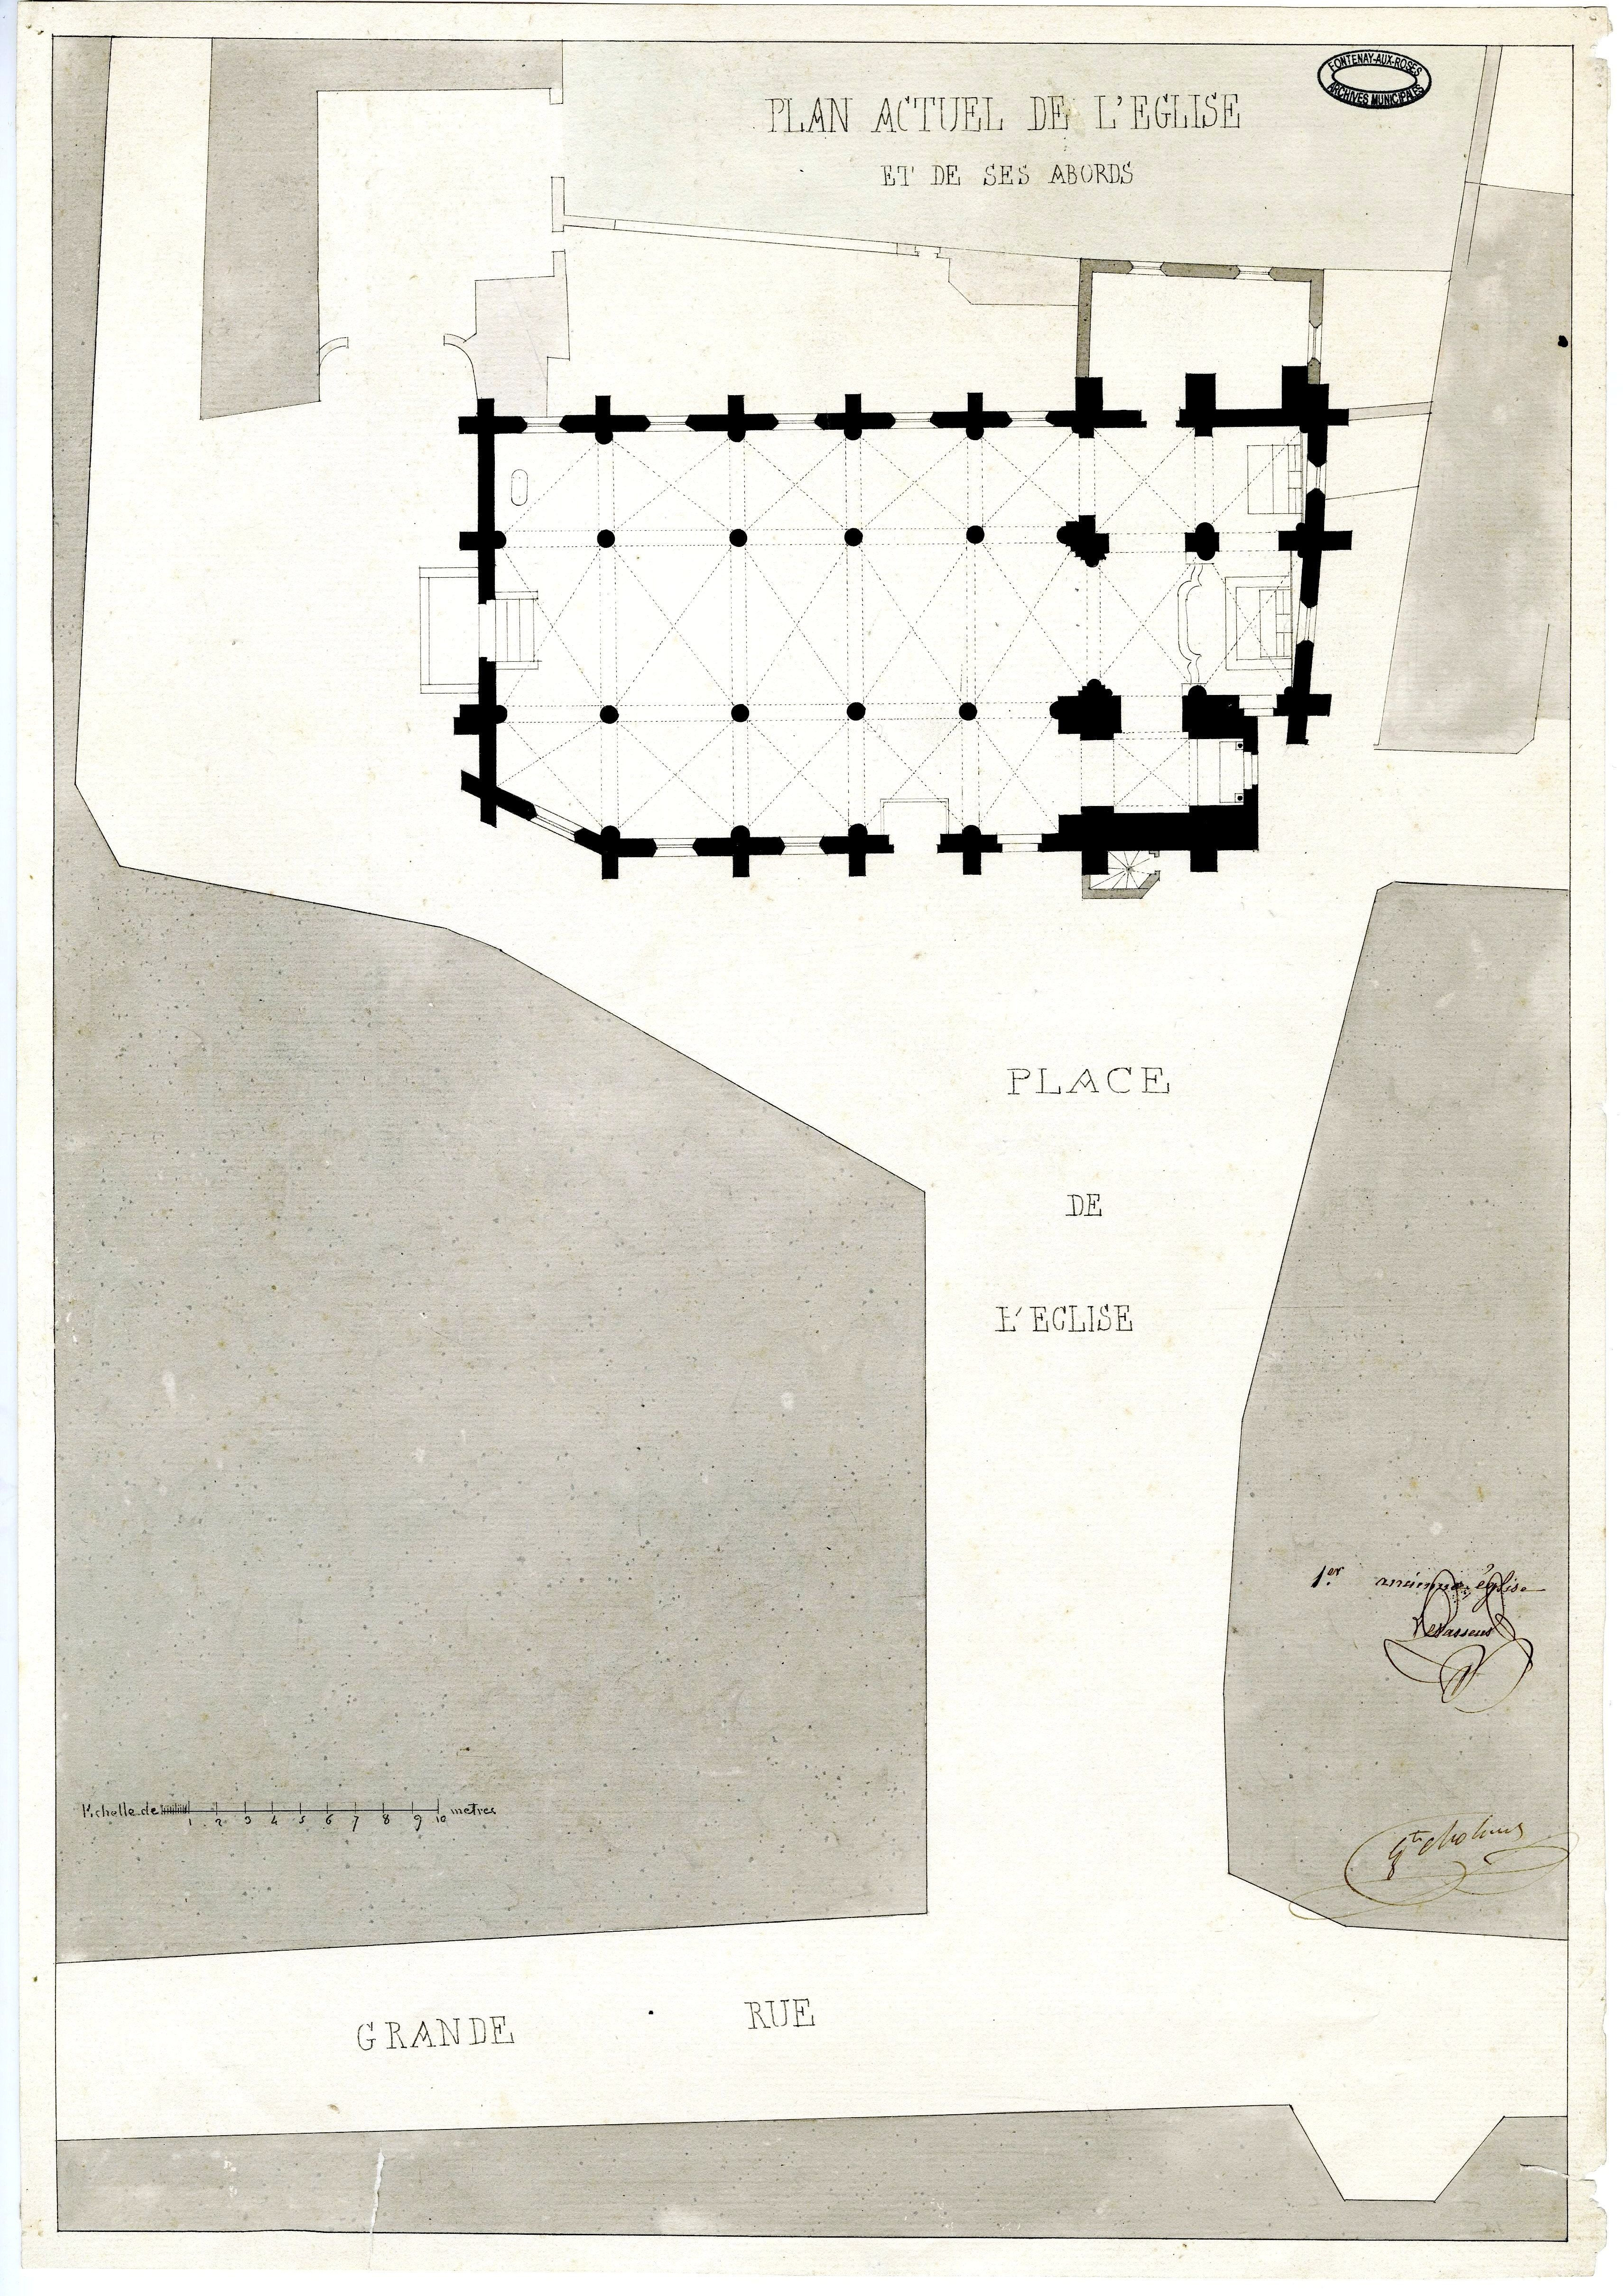 Plan de l'église Saint-Pierre Saint-Paul vers 1830. So effondrement partiiel en 1832 provoquera sa reconstruction. AMFaR série P